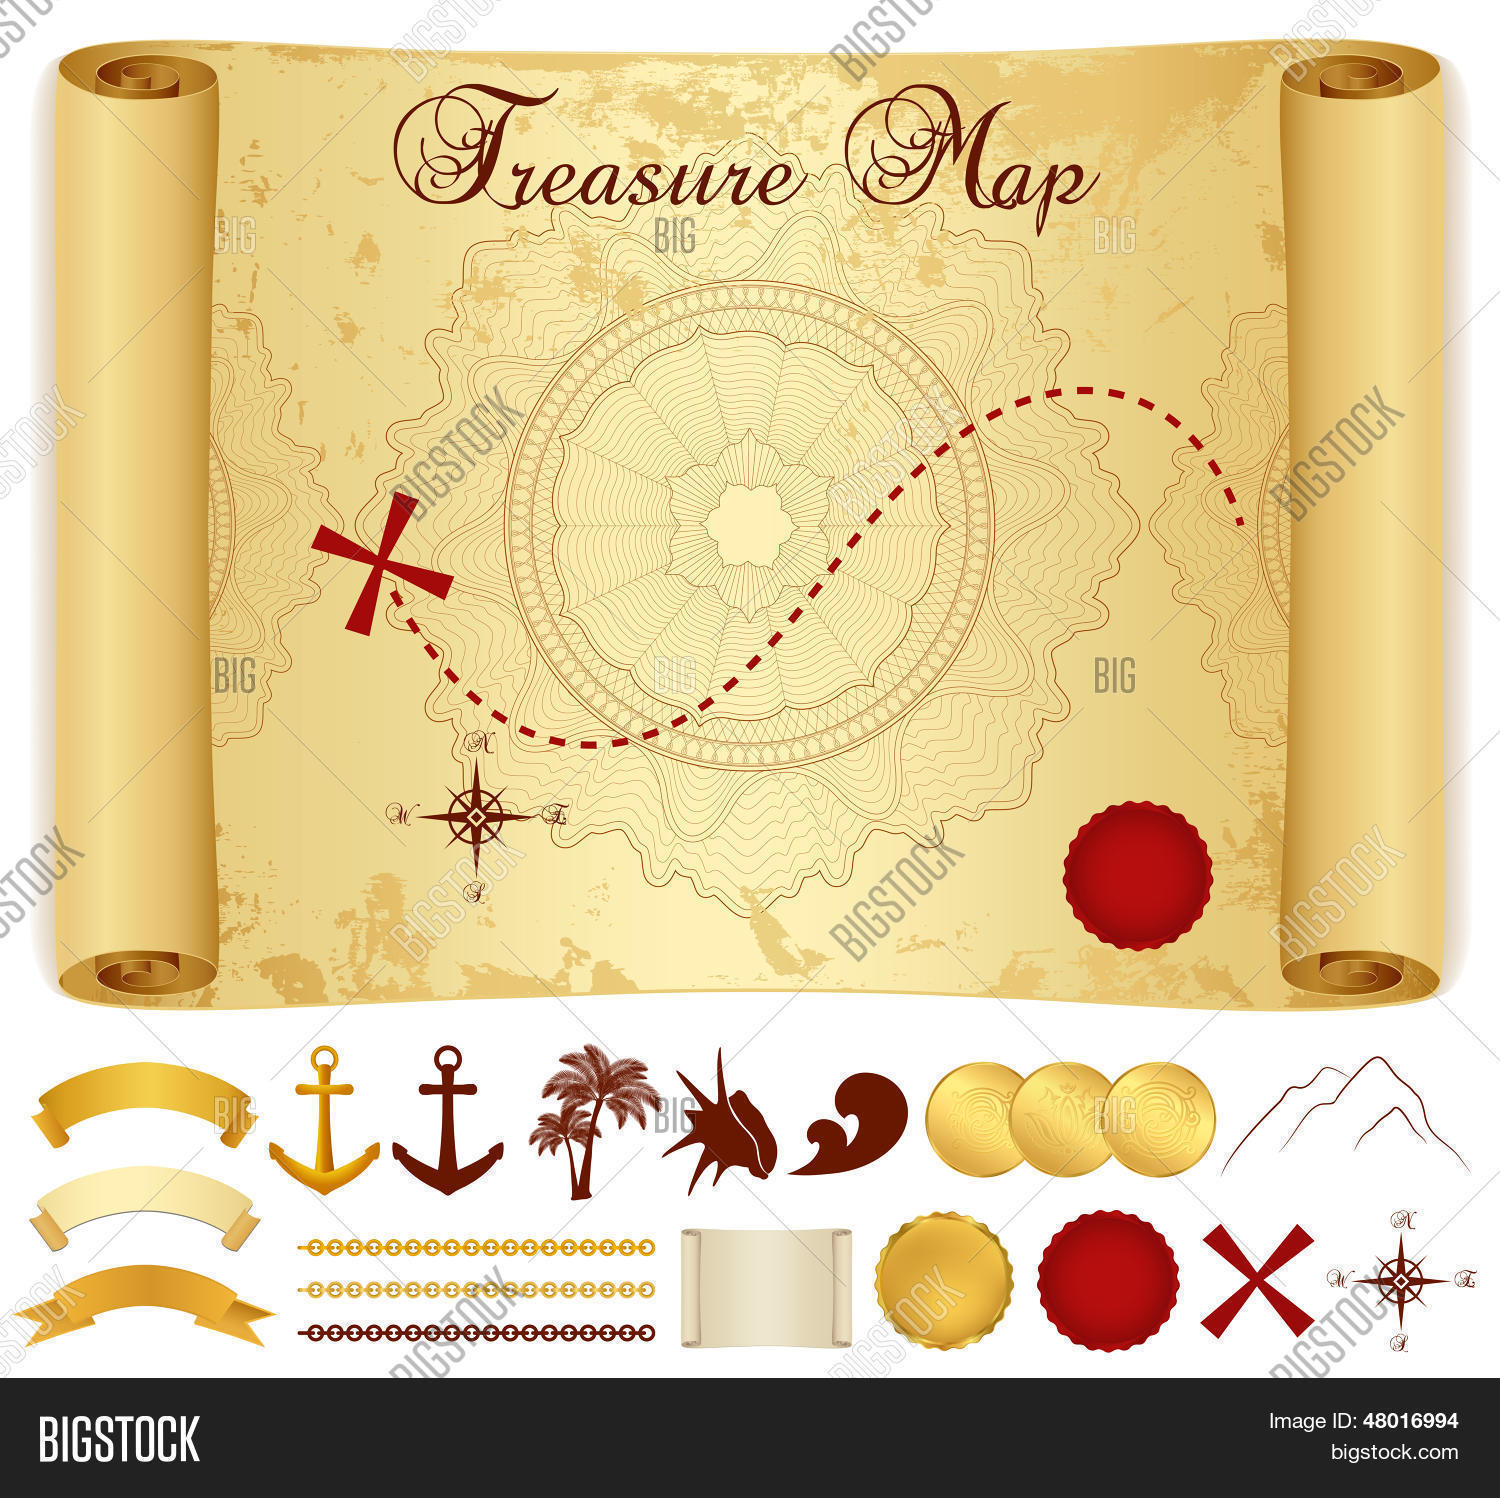 Treasure Map On Old Vintage Antique Paper Scroll Or Parchment